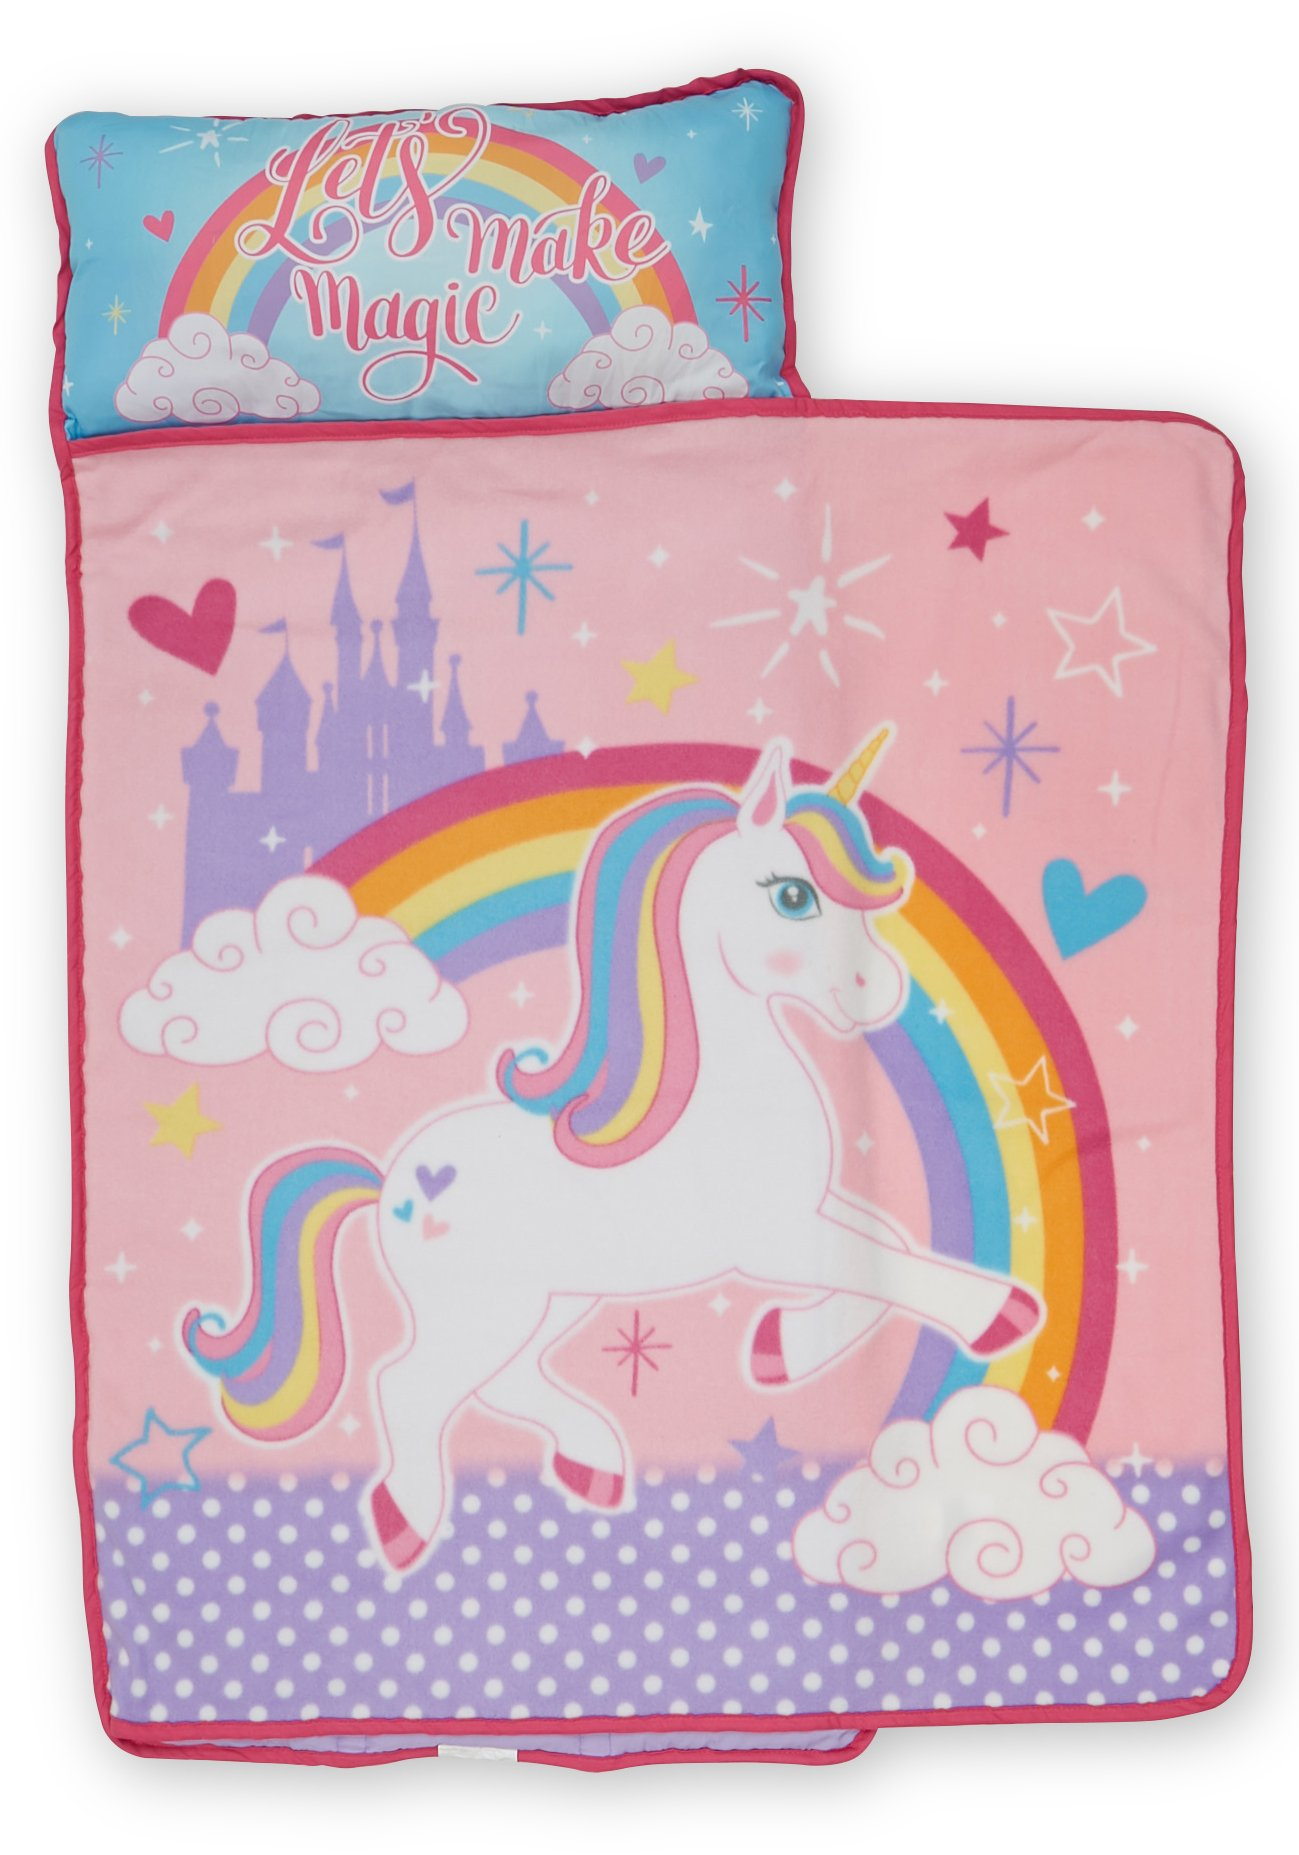 Baby Boom Nap Mat Set - Includes Pillow and Fleece Blanket – Great for Boys and Girls Napping at Daycare, Preschool, Or Kindergarten - Fits Sleeping Toddlers and Young Children - Kid Friendly Design by Baby Boom (Image #2)